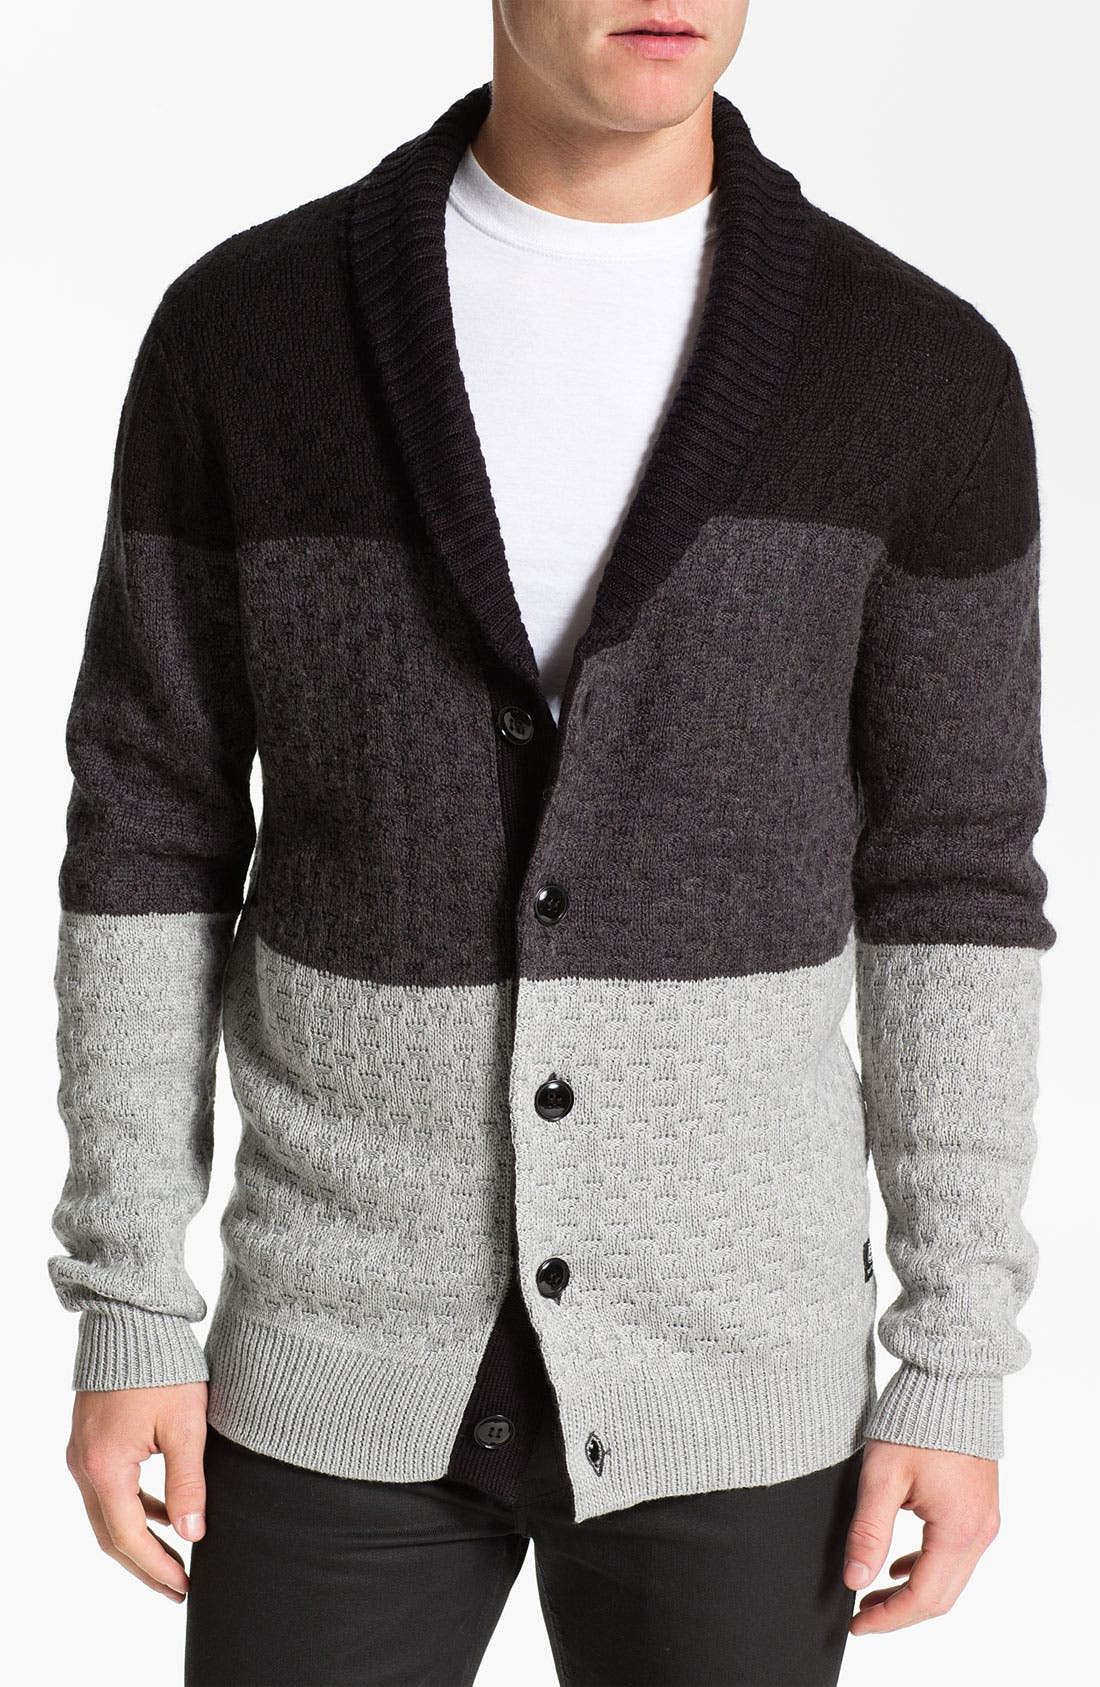 Alternate Image 1 Selected - 55DSL 'Kanfyl' Shawl Collar Cardigan